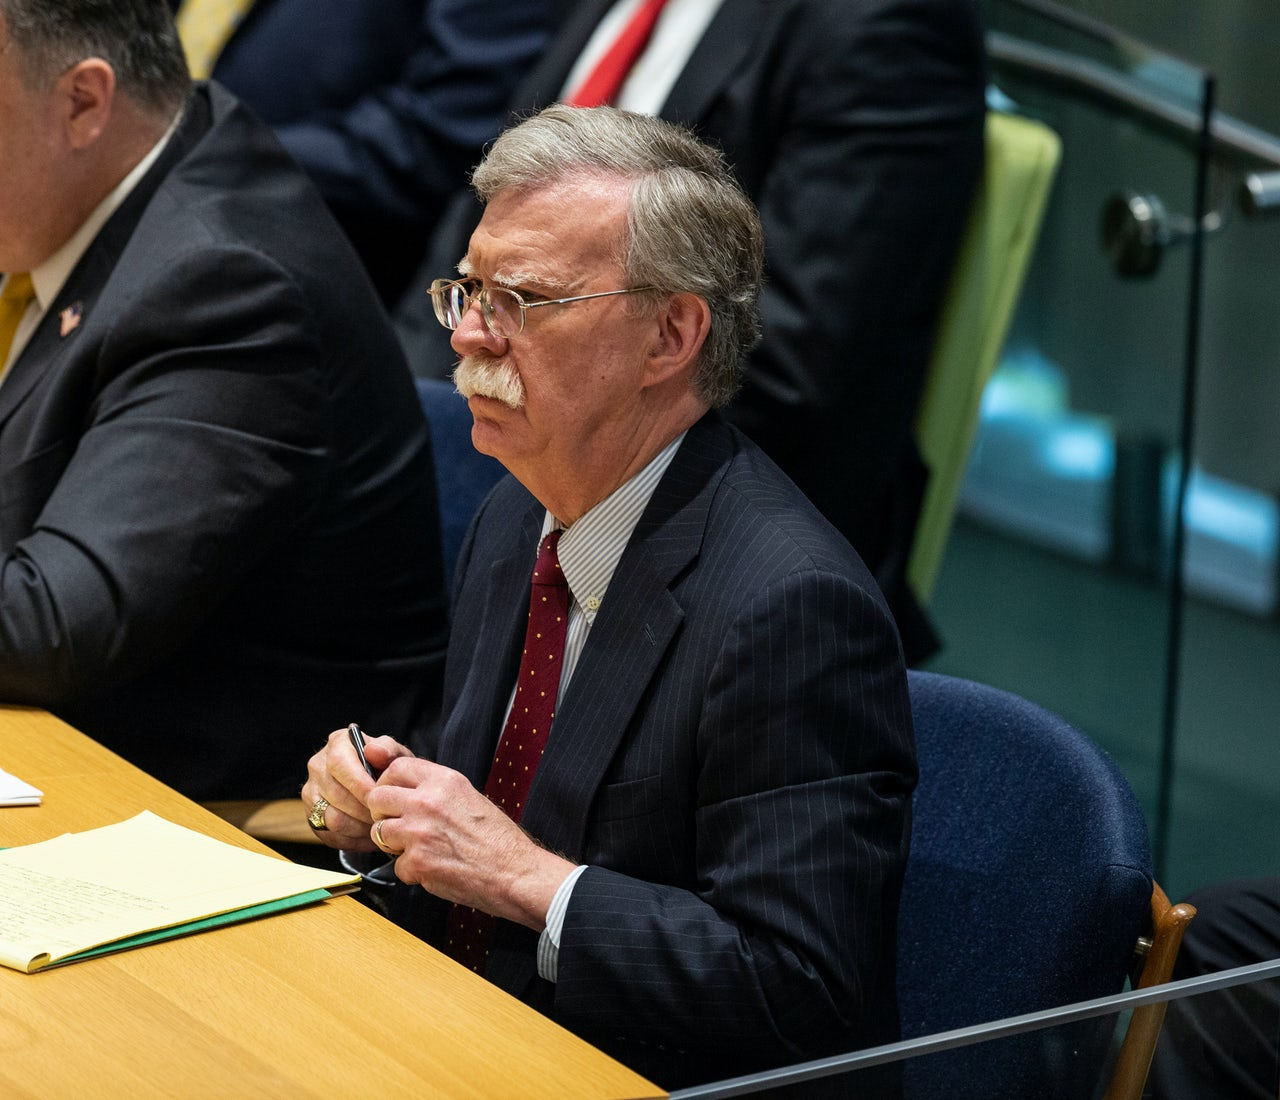 John Bolton and the end of coherent political narratives